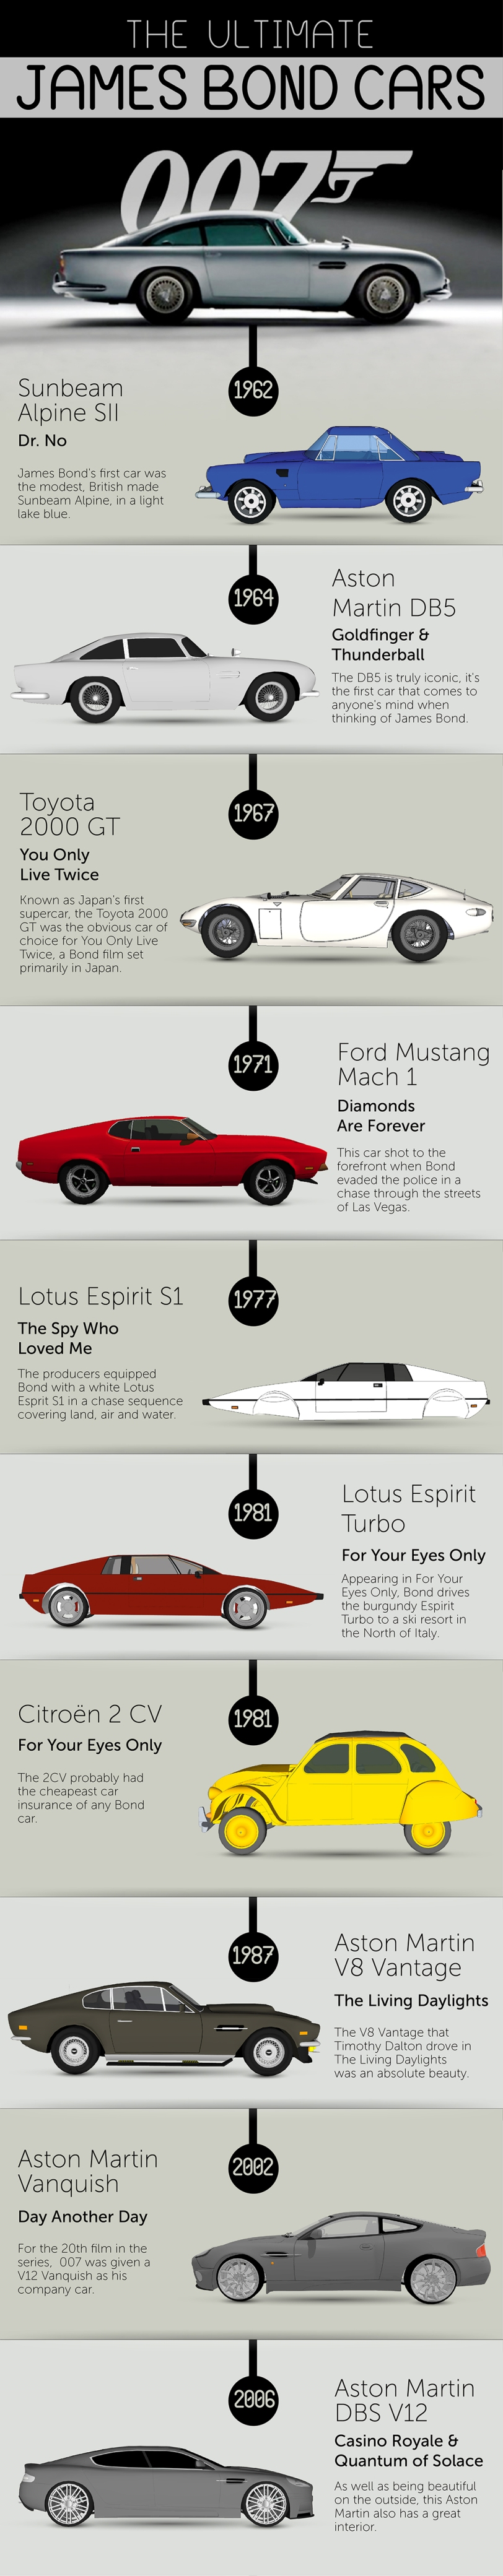 The Ultimate James Bond Cars